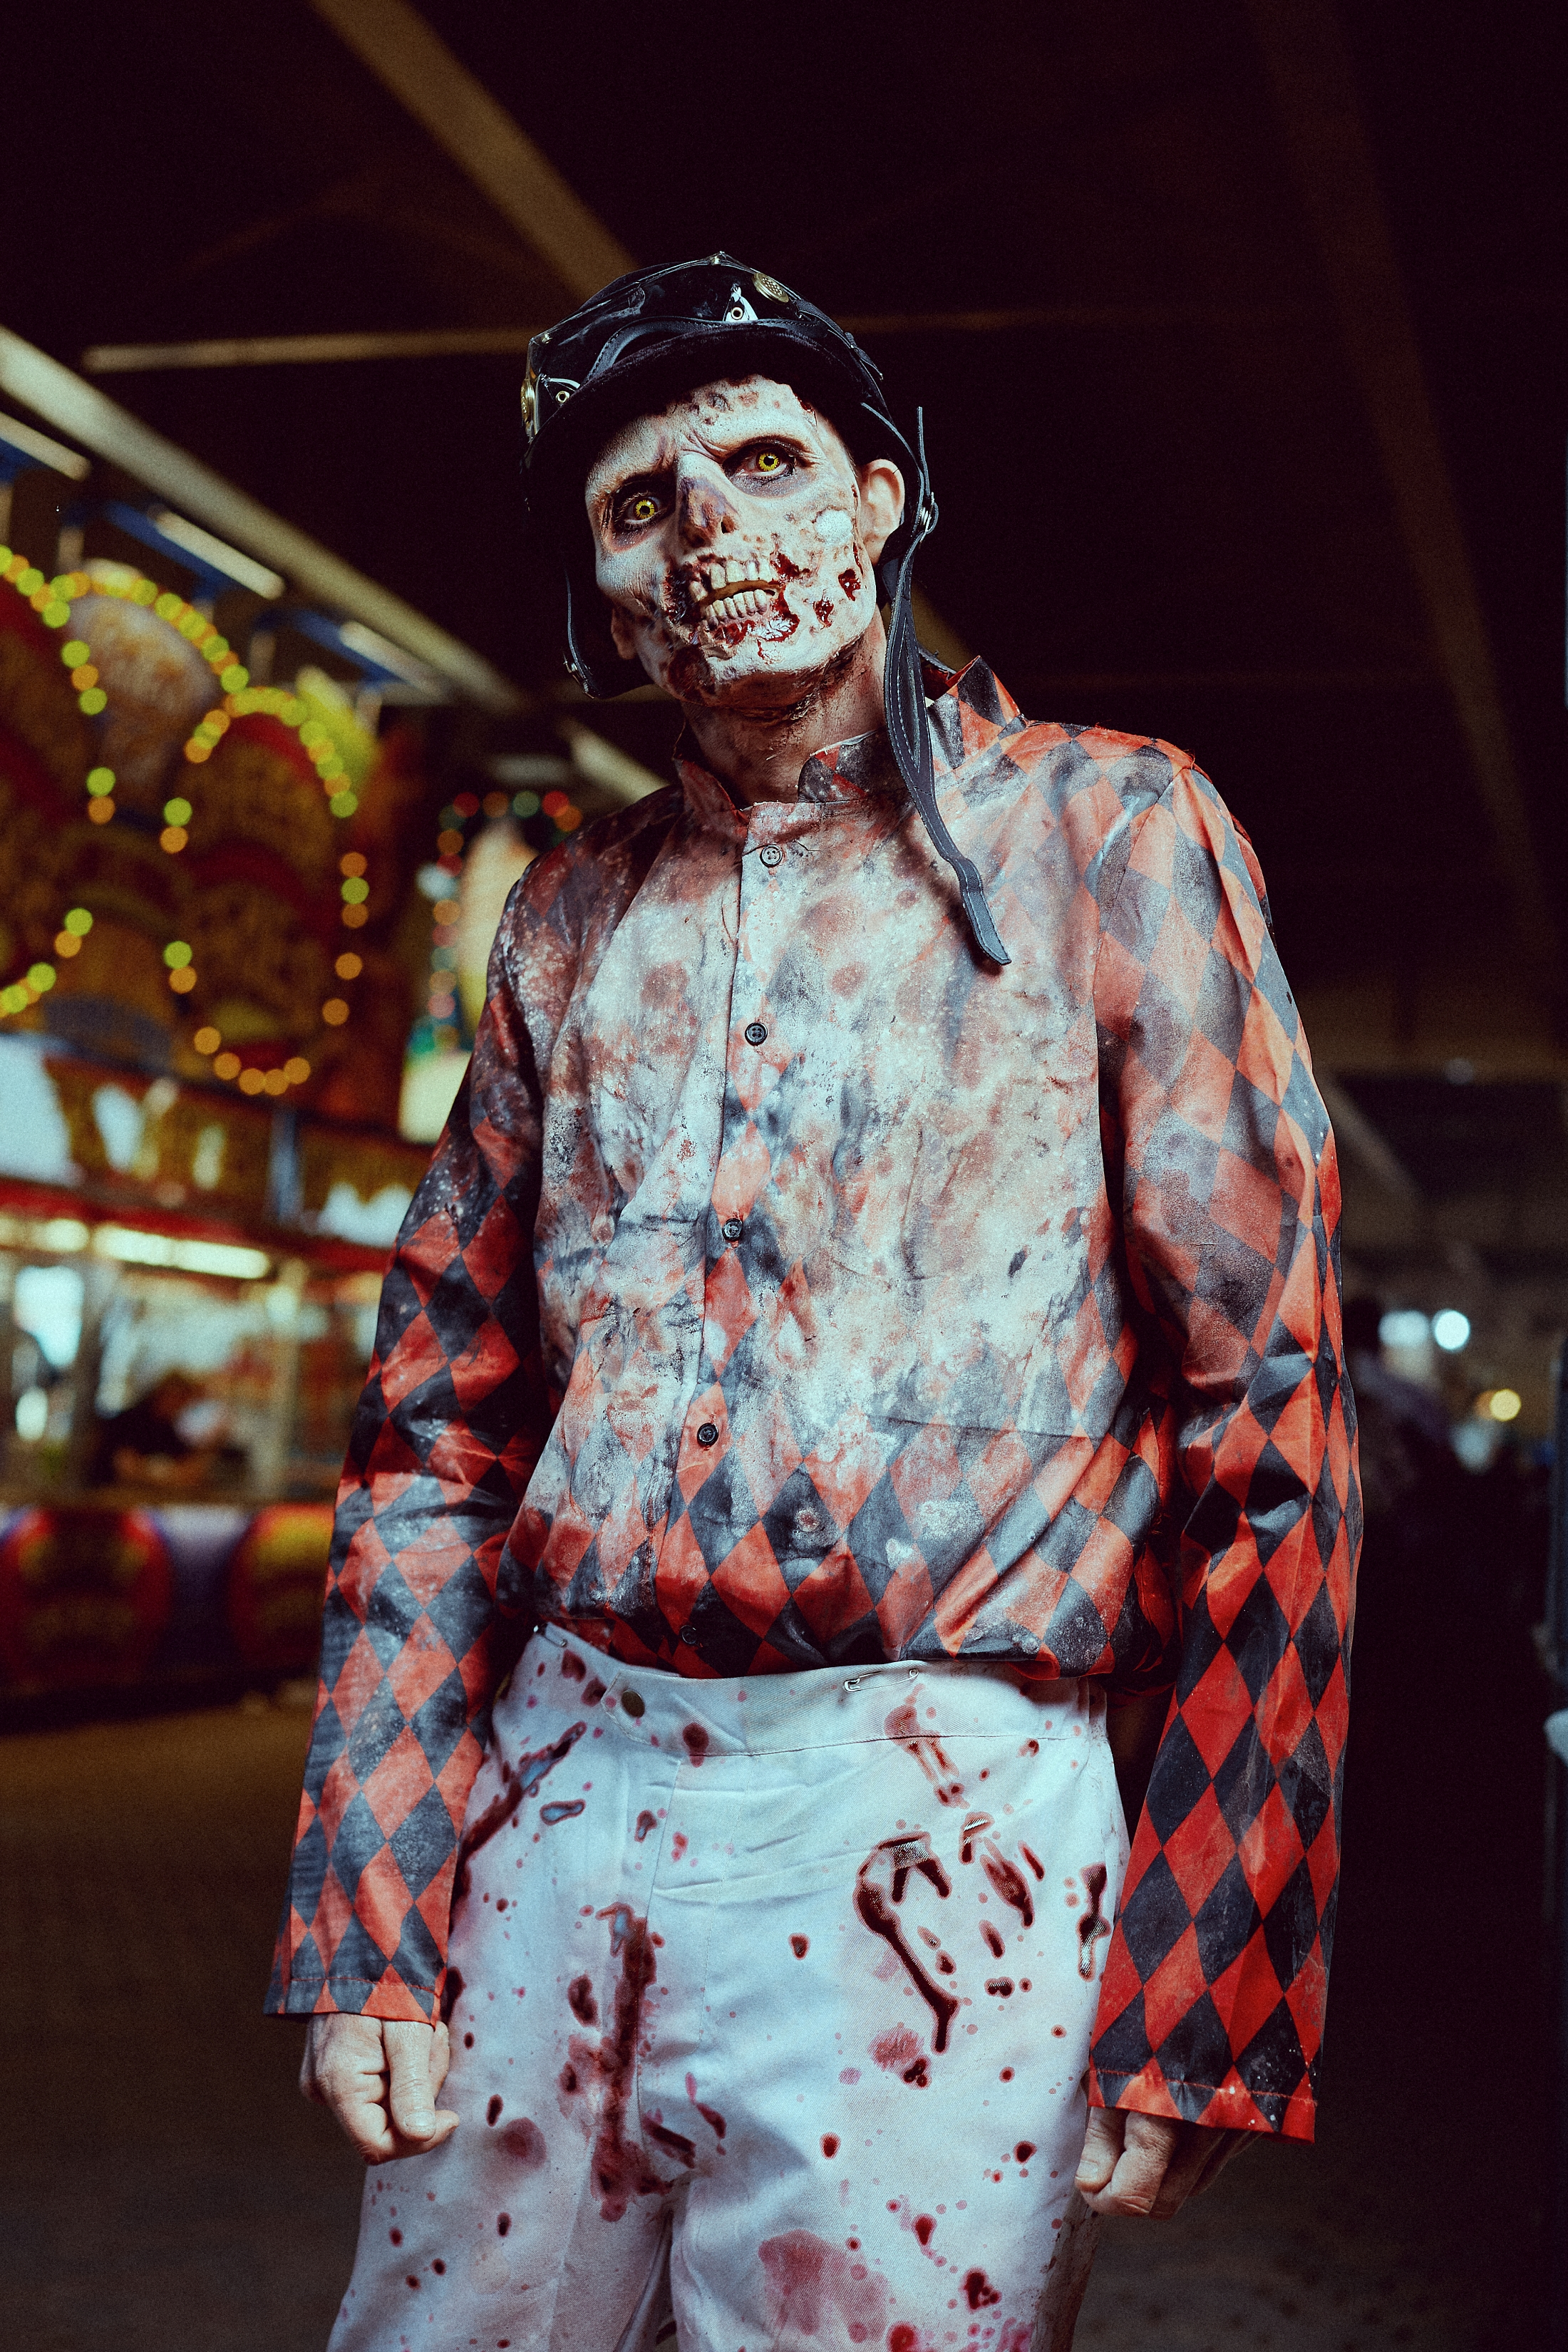 Photo of Jeff Howell as Pat Day of the Dead by Tate Chmielewski